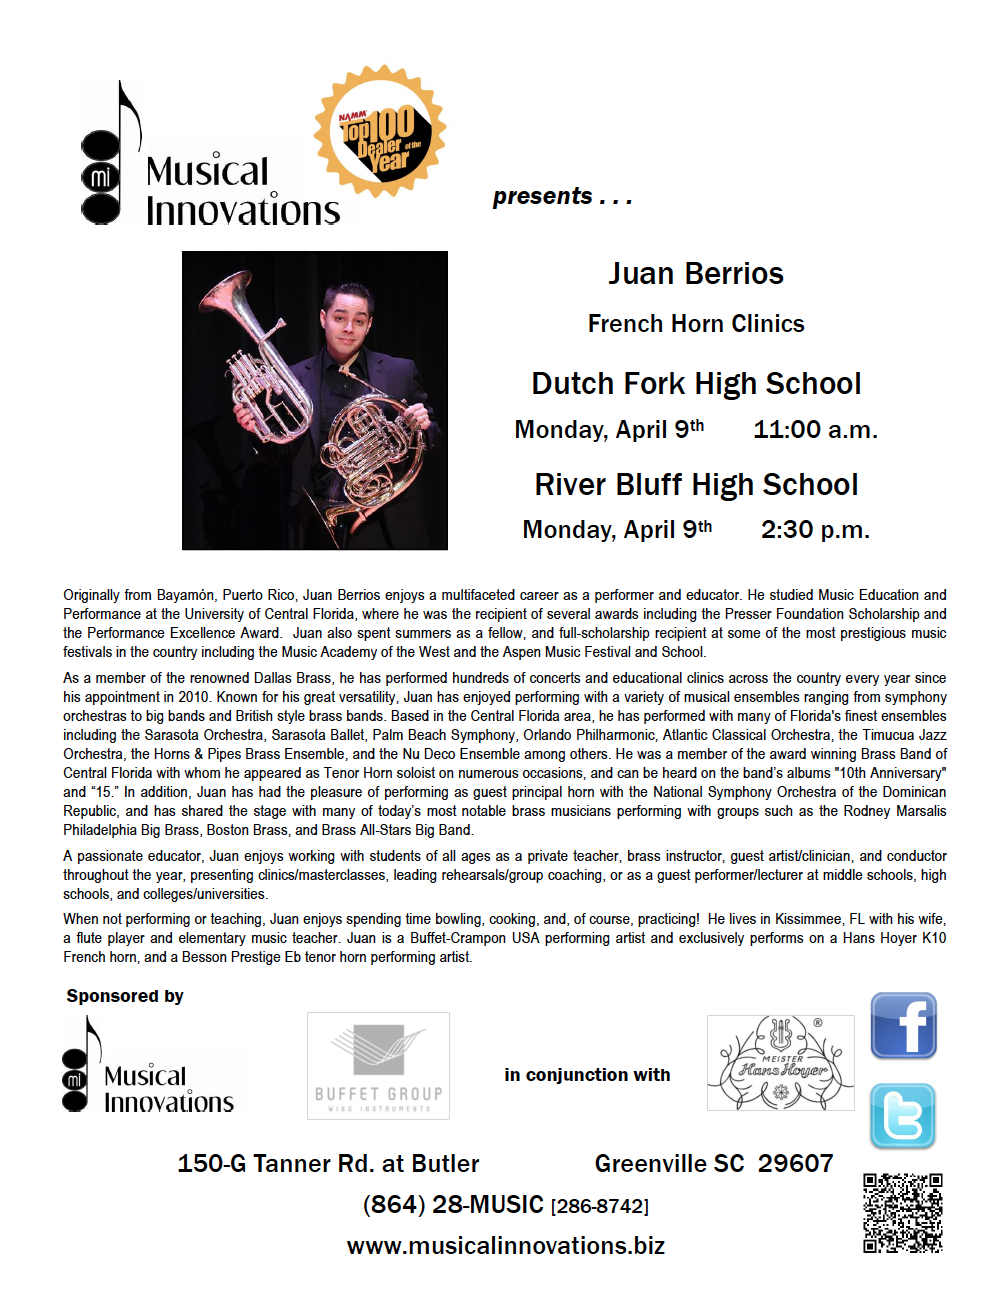 Juan Berrios french horn clinic sponsored in part by Musical Innovations